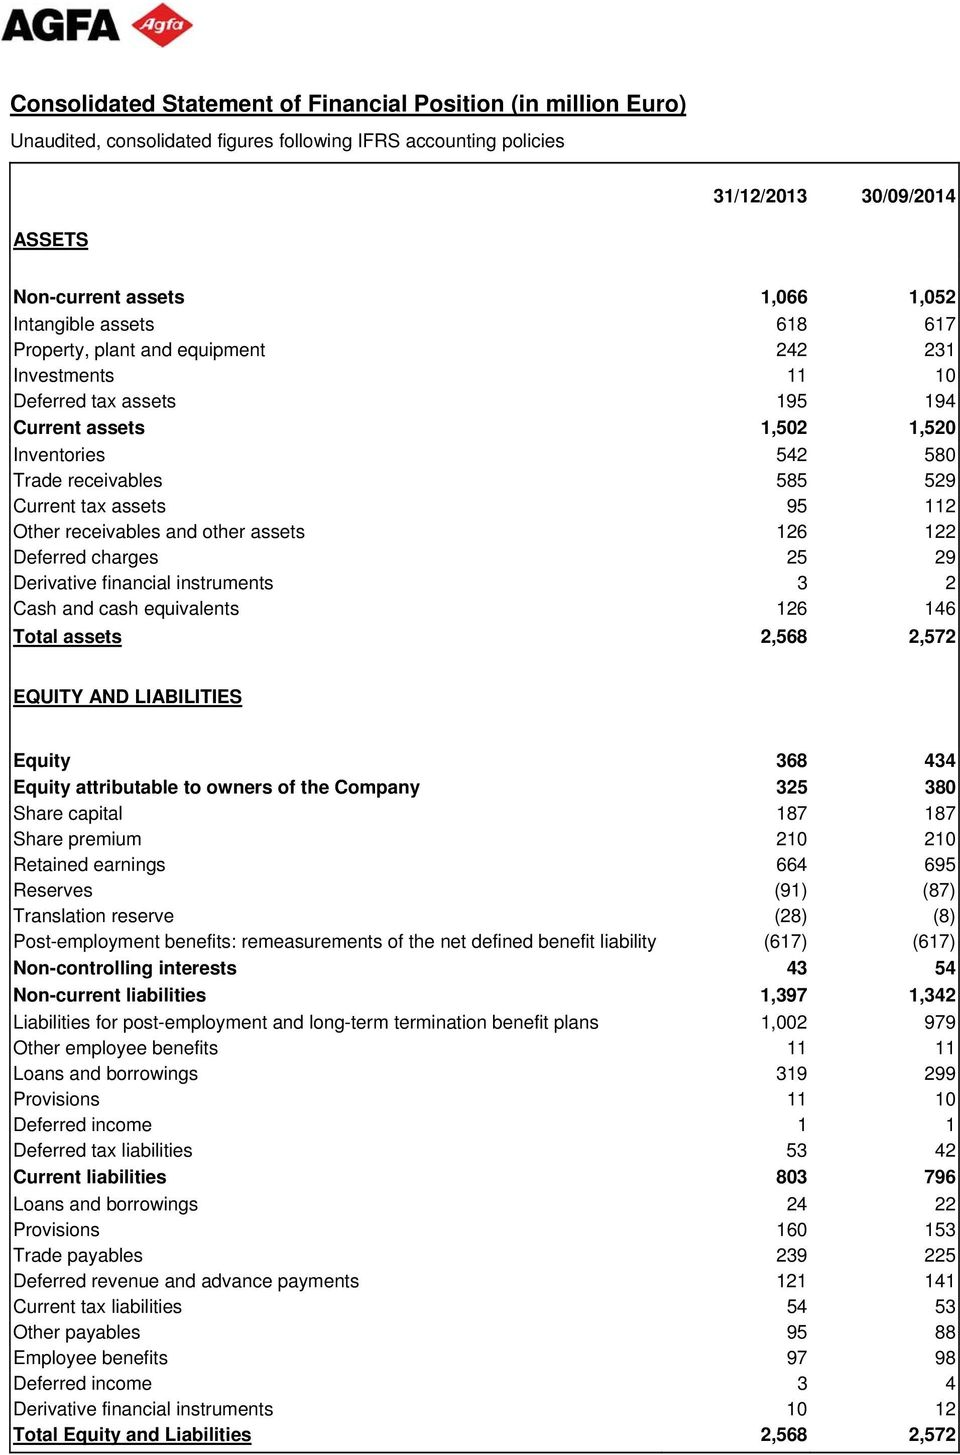 Derivative financial instruments 3 2 Cash and cash equivalents 126 146 Total assets 2,568 2,572 EQUITY AND LIABILITIES Equity 368 434 Equity attributable to owners of the Company 325 380 Share